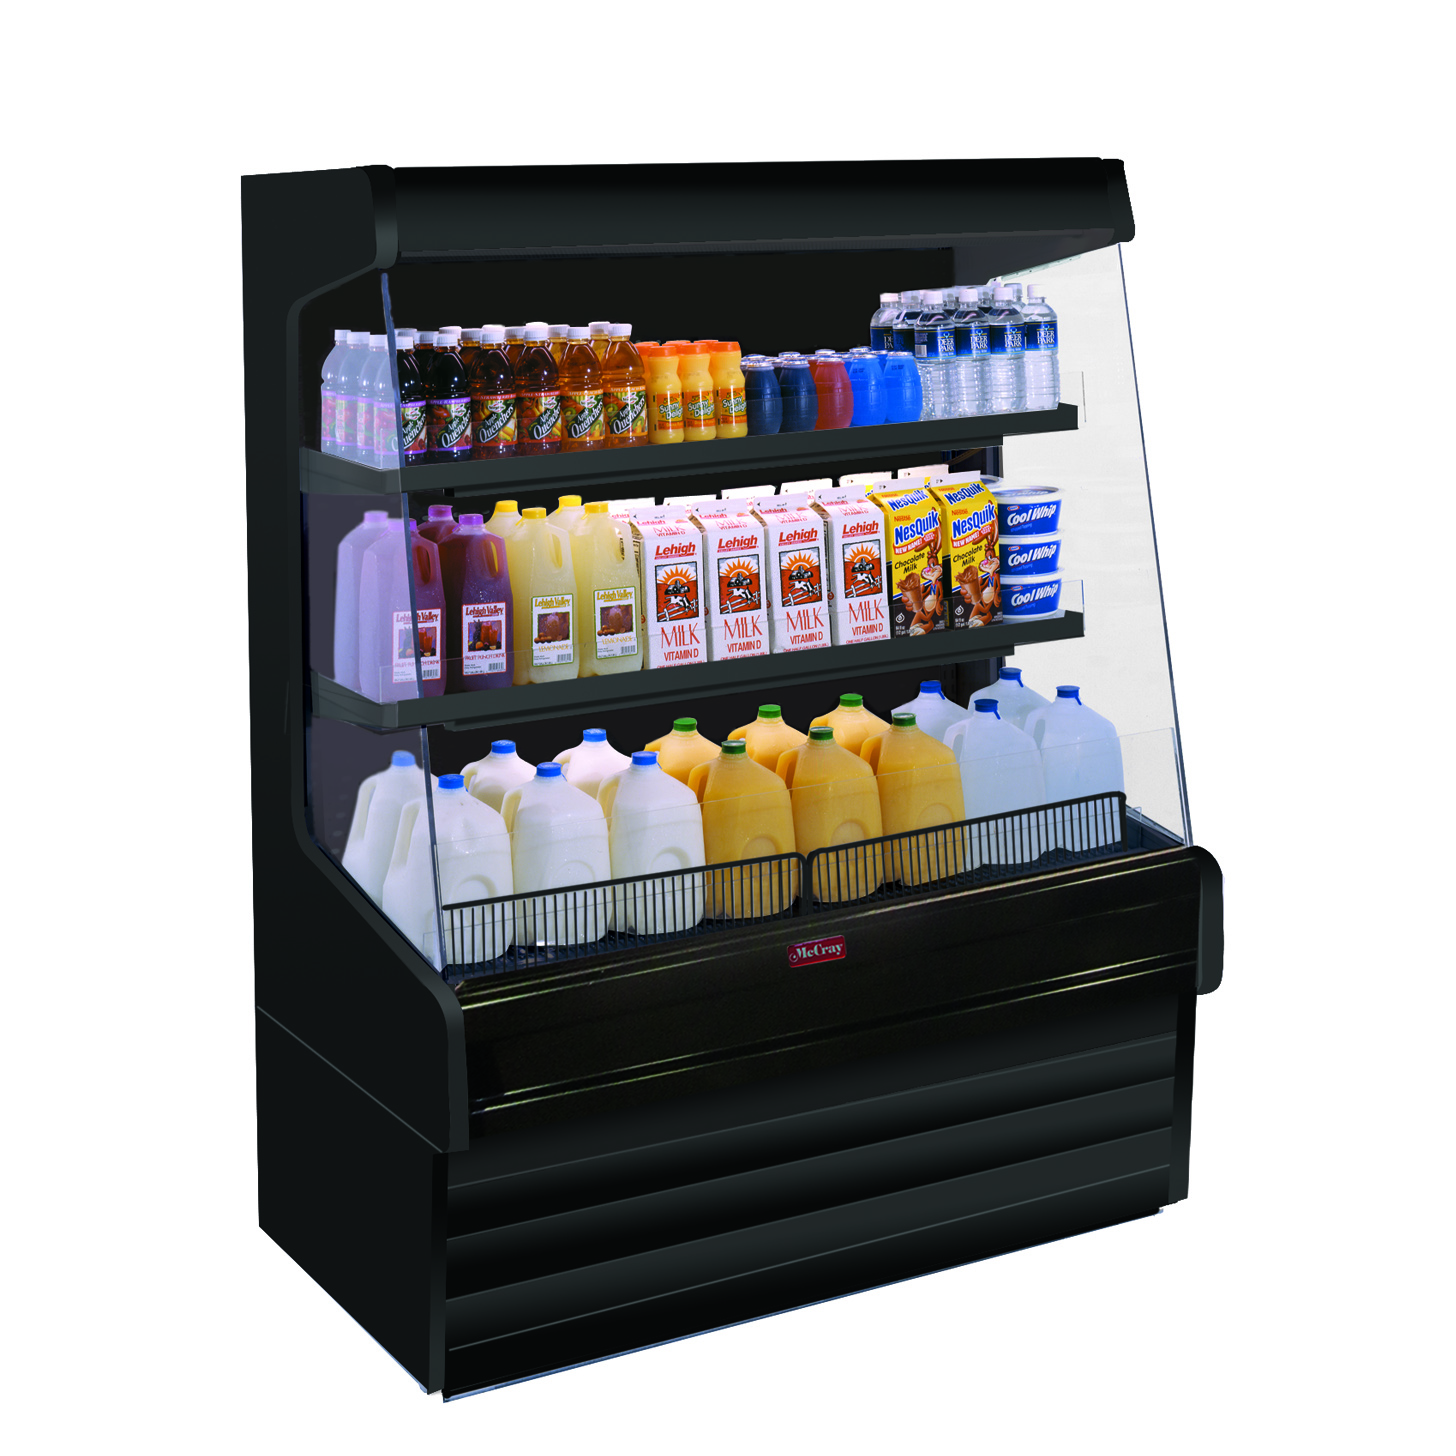 Howard-McCray SC-OD30E-3L-B-LED merchandiser, open refrigerated display